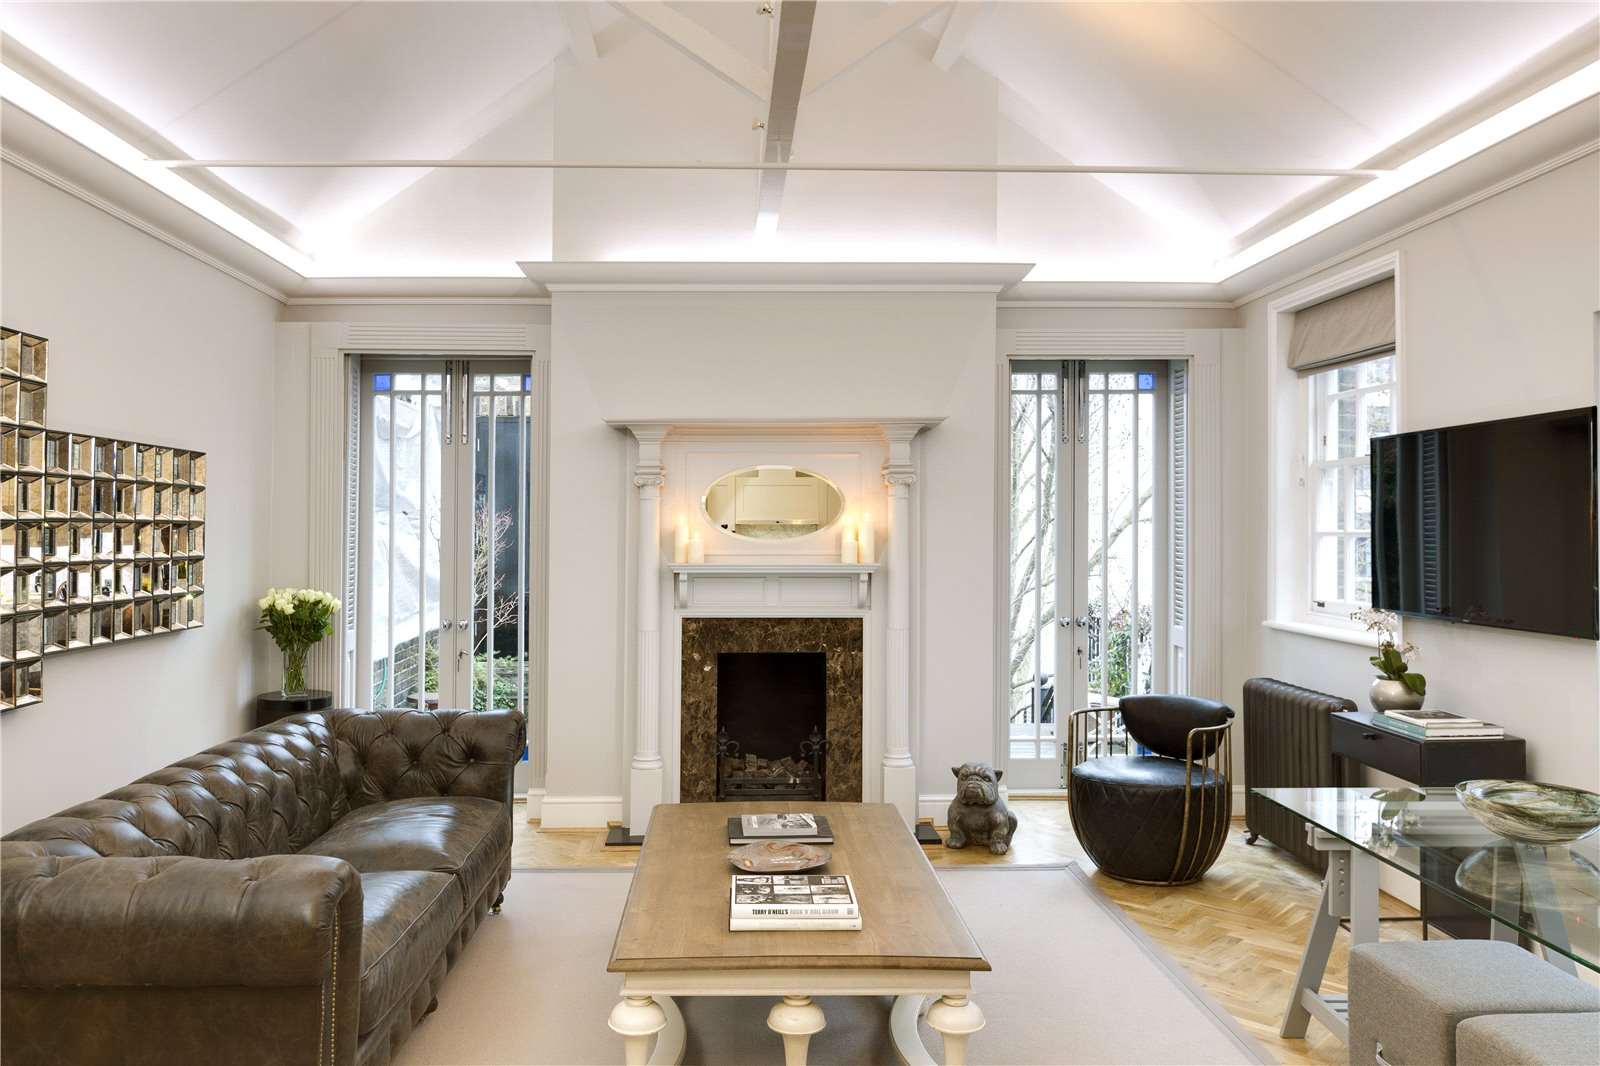 Apartment for Rent at North Audley Street, Mayfair, London, W1K North Audley Street, Mayfair, London, W1K